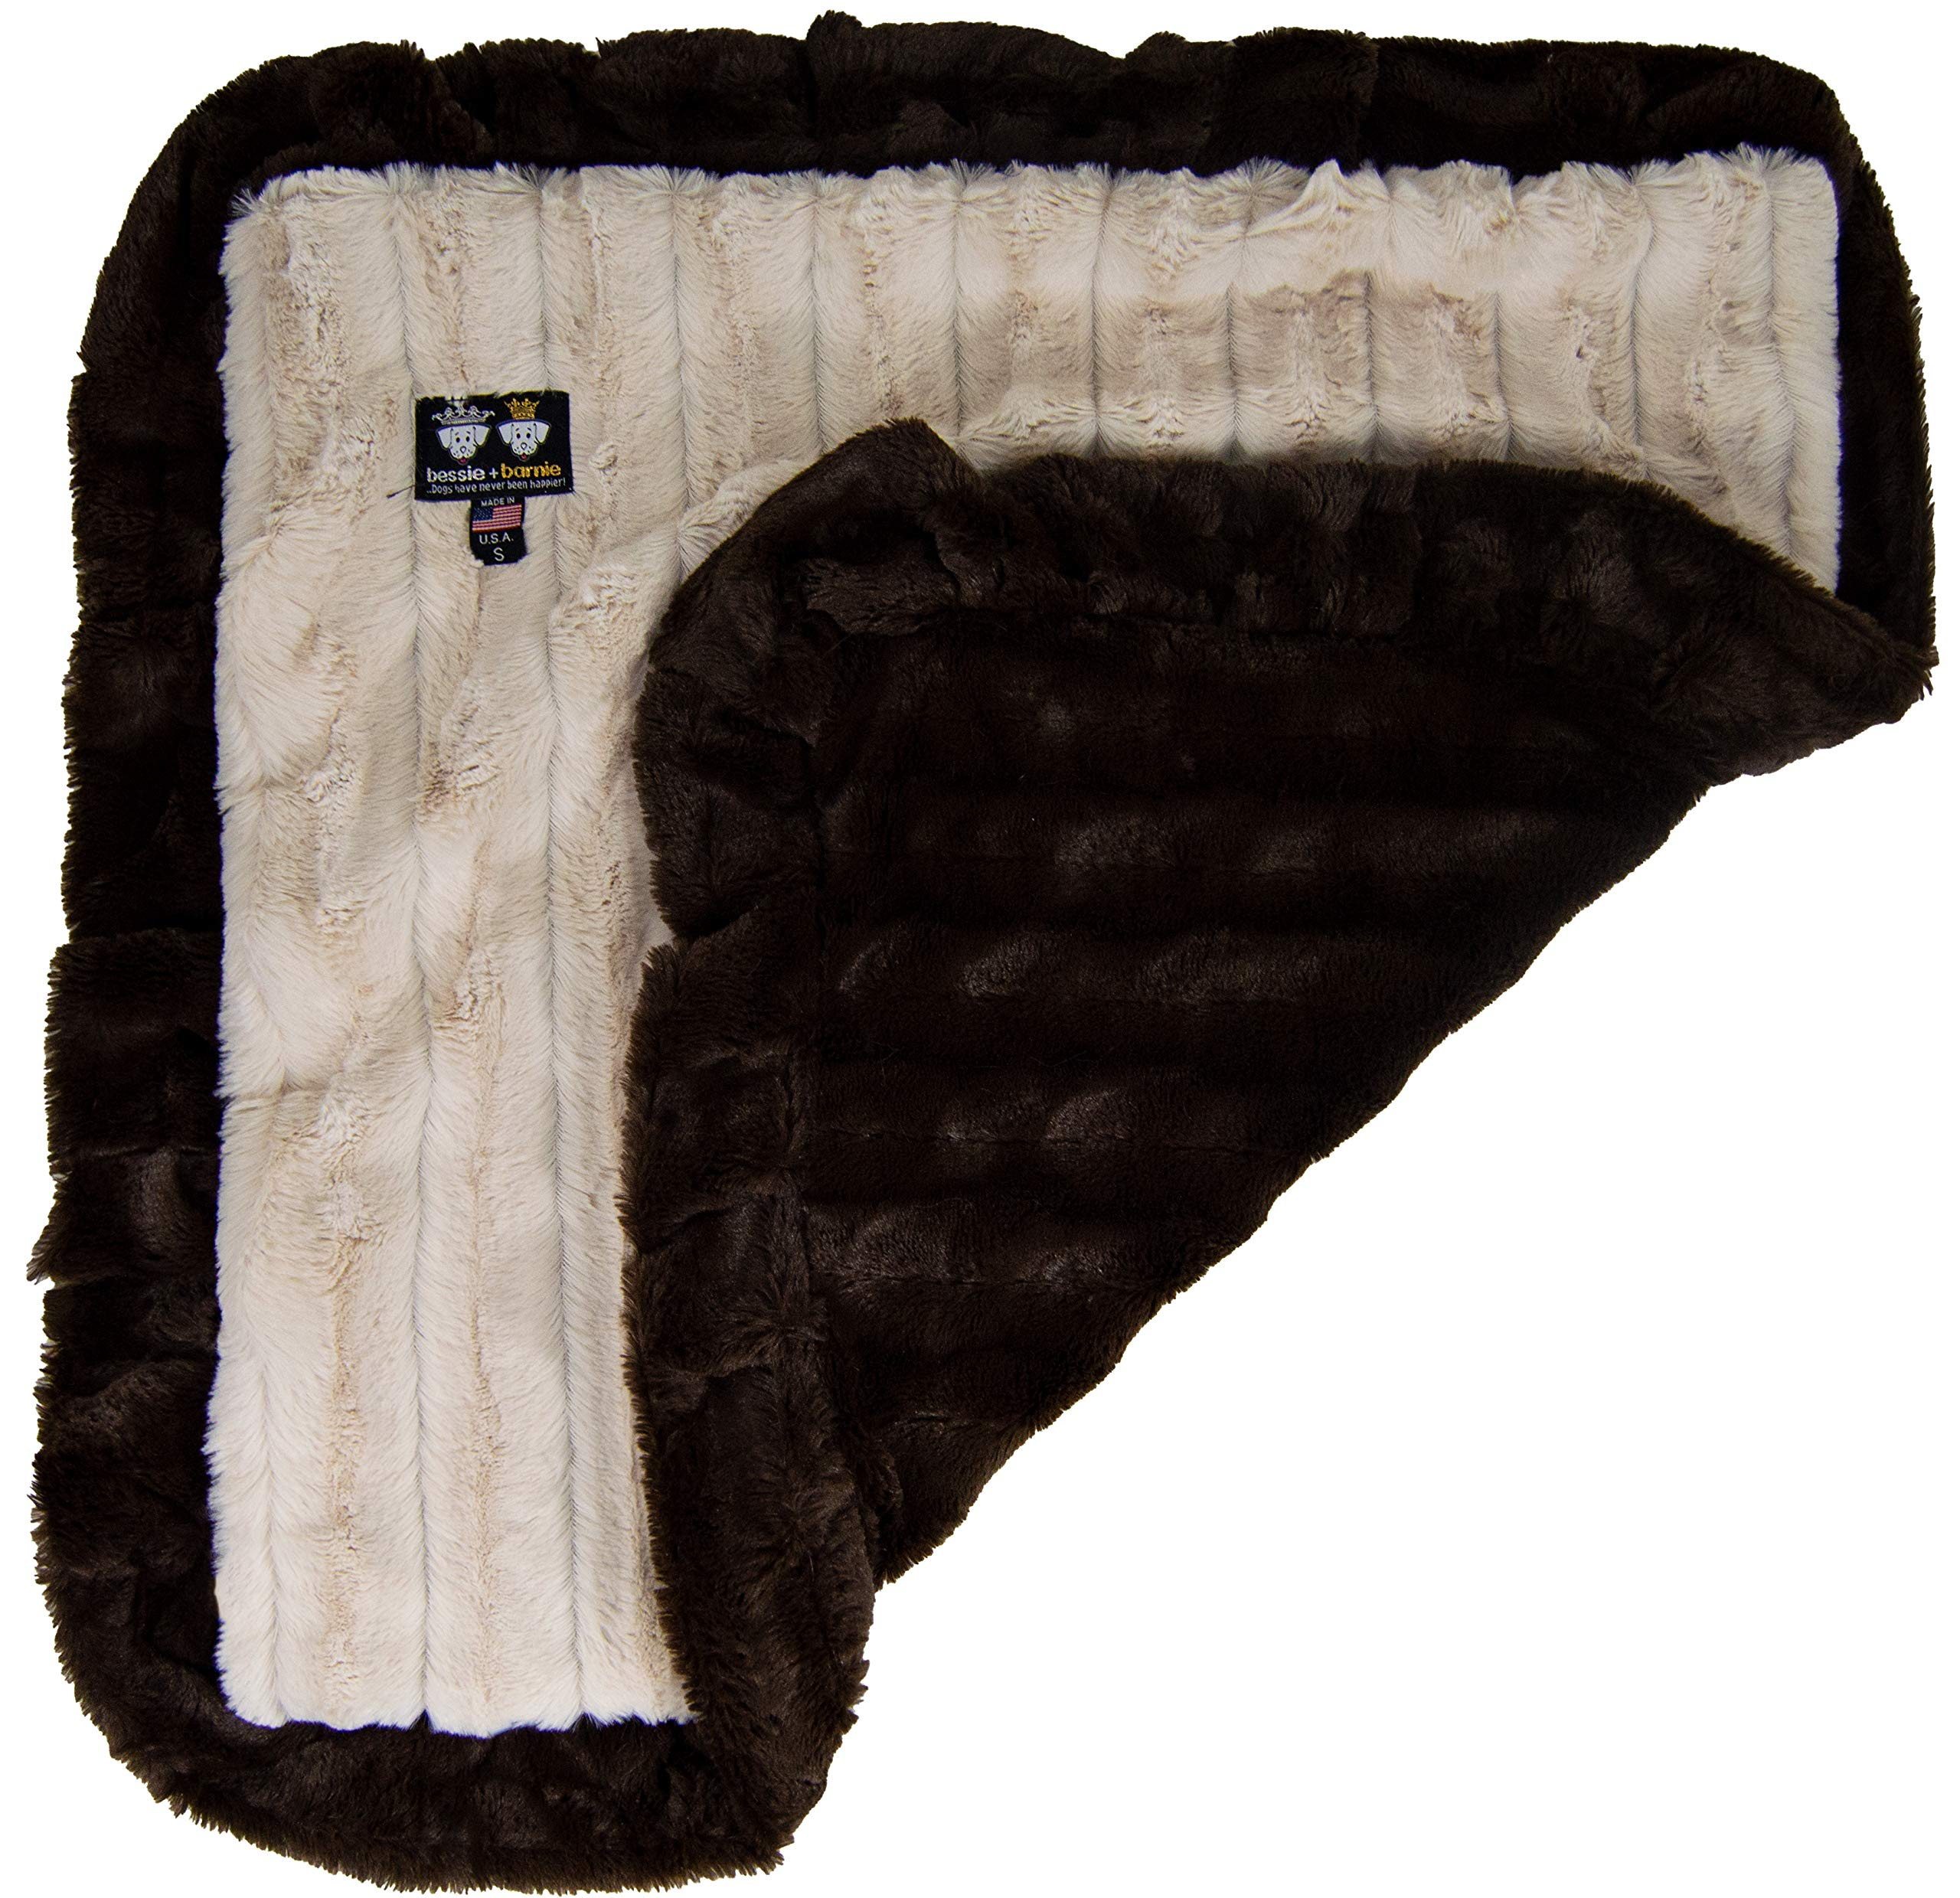 Bessie and Barnie Natural Beauty/Godiva Brown Luxury Ultra Plush Faux Fur Pet, Dog, Cat, Puppy Super Soft Reversible Blanket (Multiple Sizes), MD - 36'' x 28'' by Bessie and Barnie